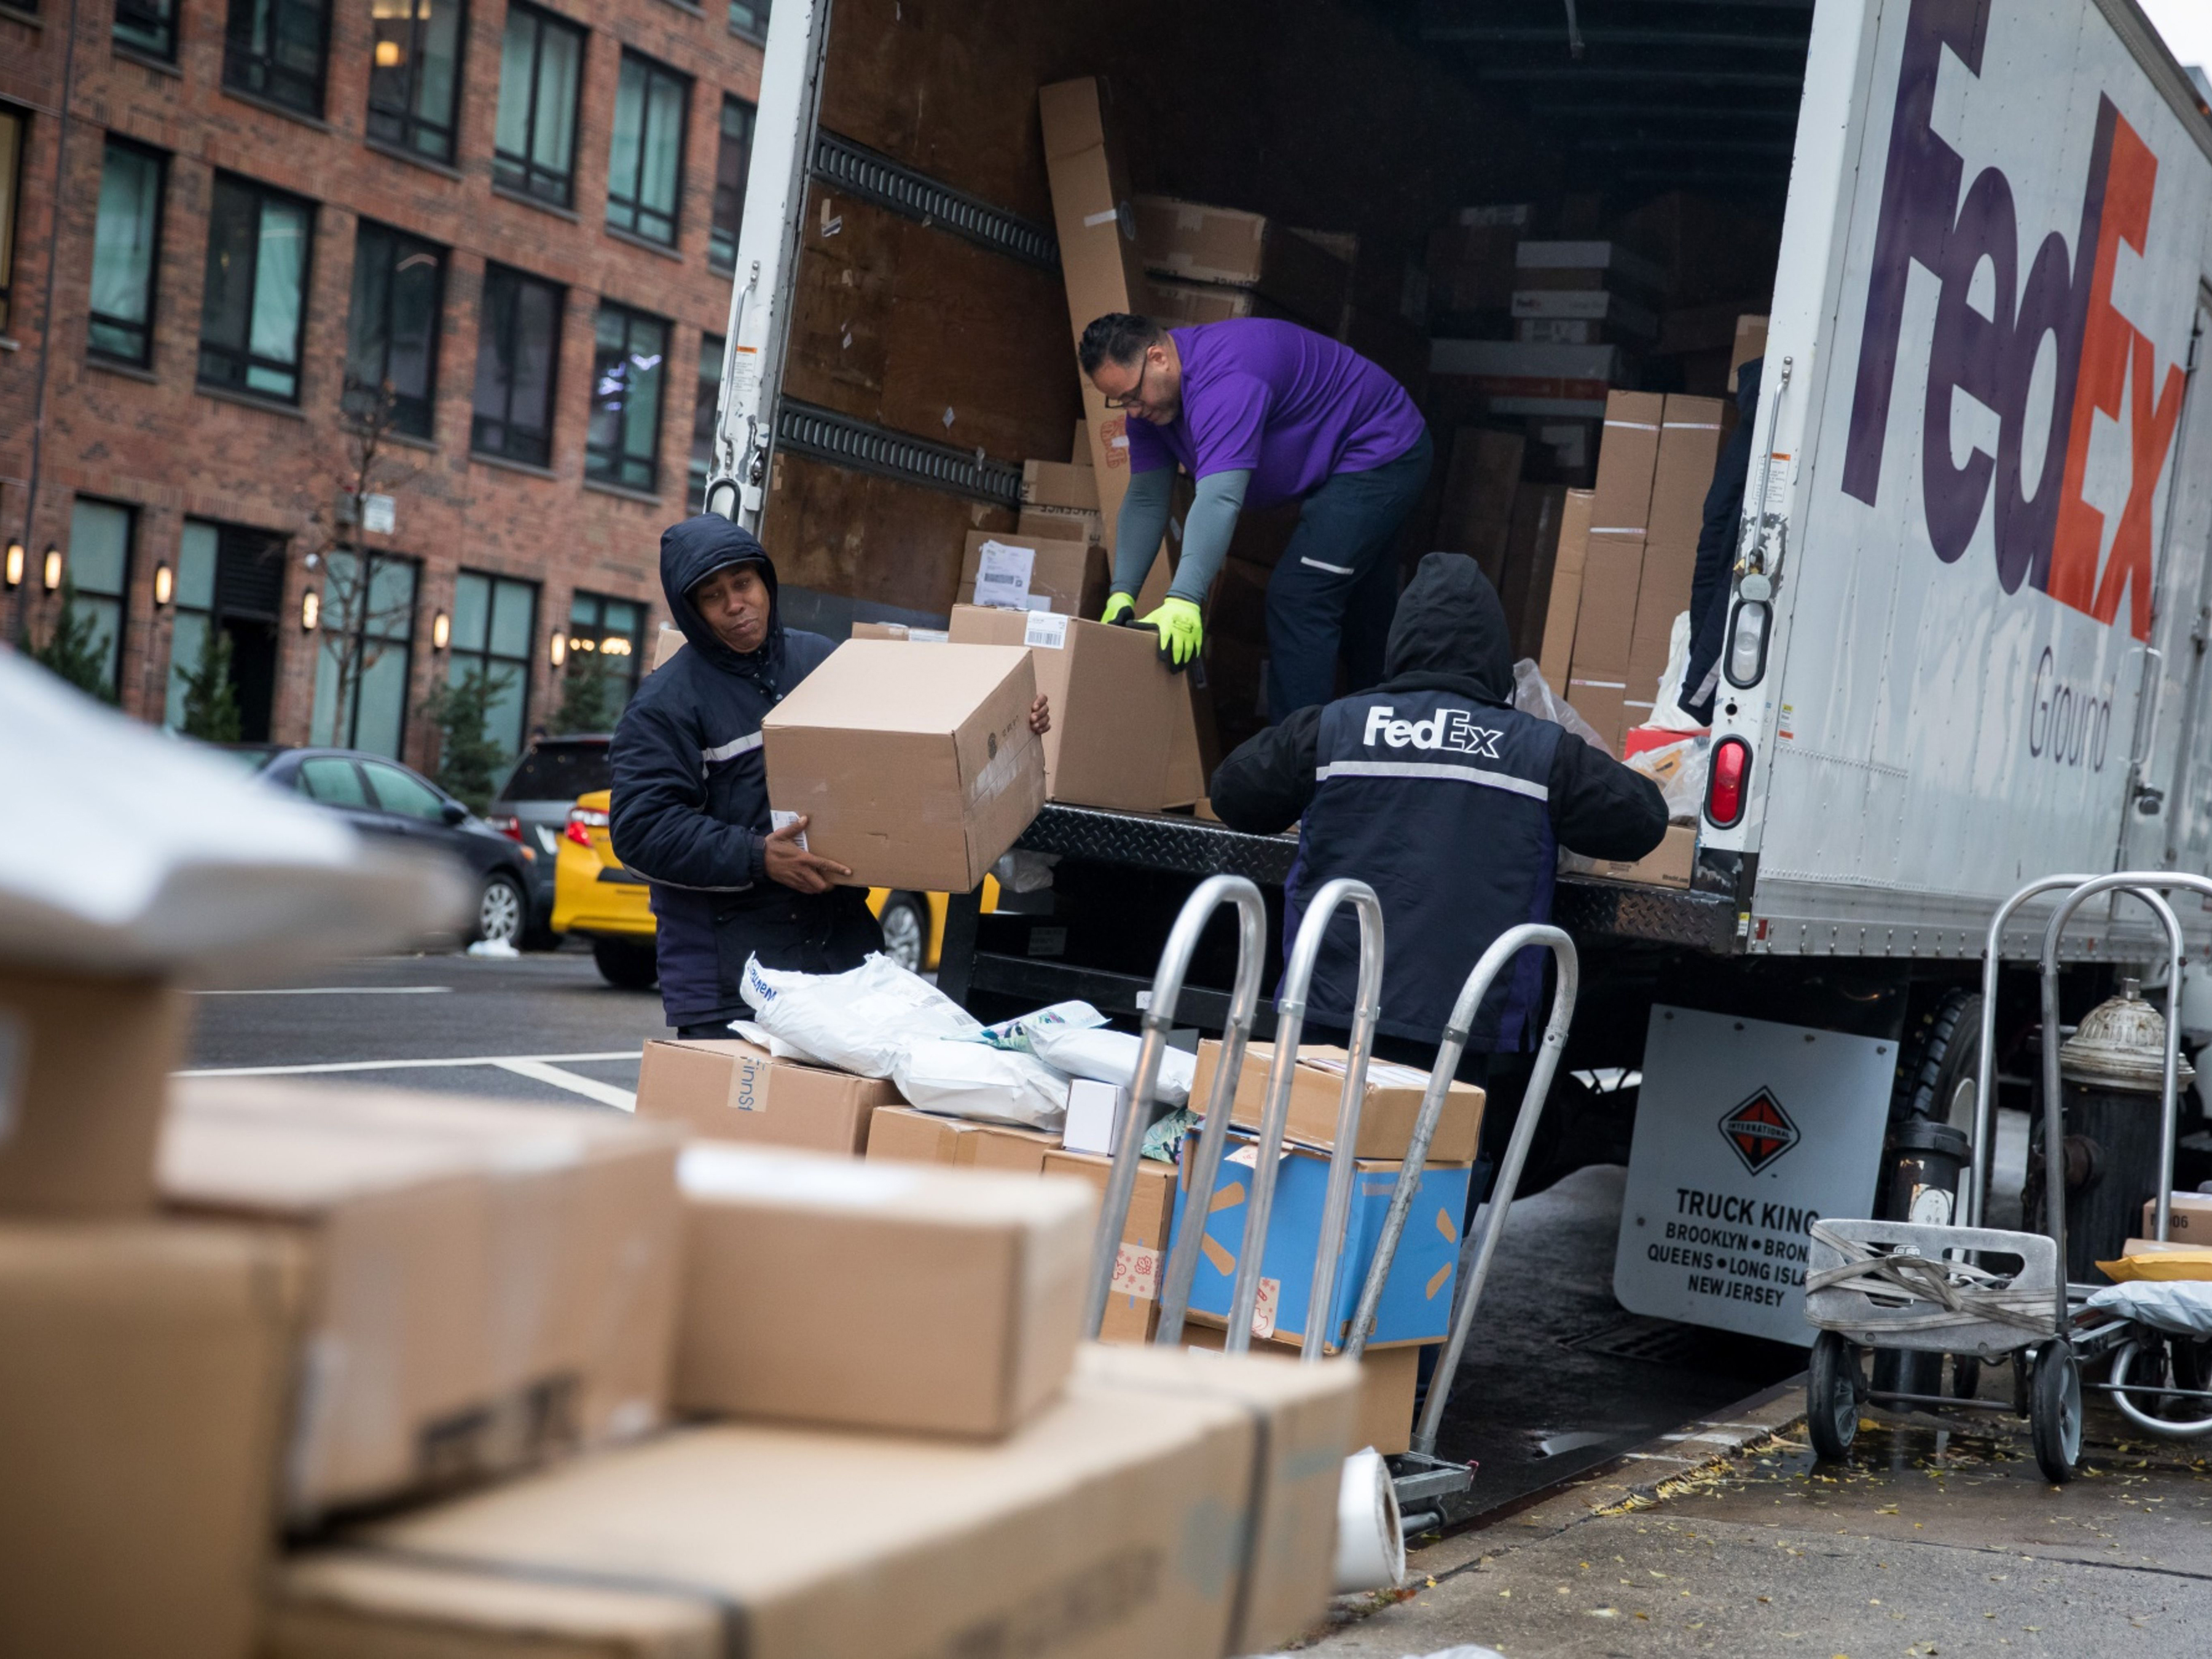 FedEx Has a Plan to Battle Amazon Shipping, CEO Says